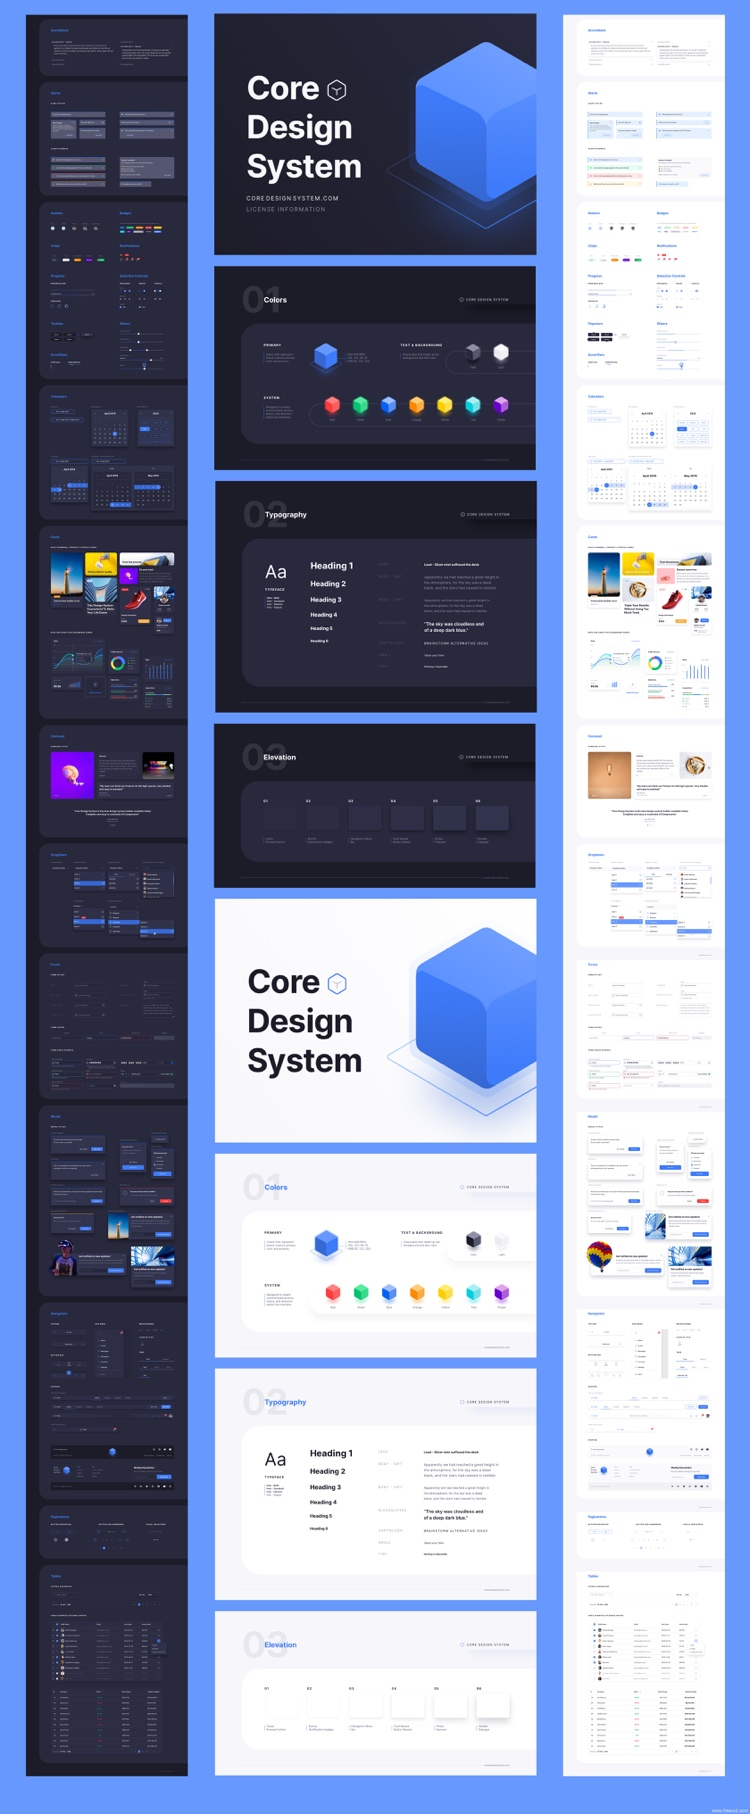 Core Design System Free 2 - UI Freebies